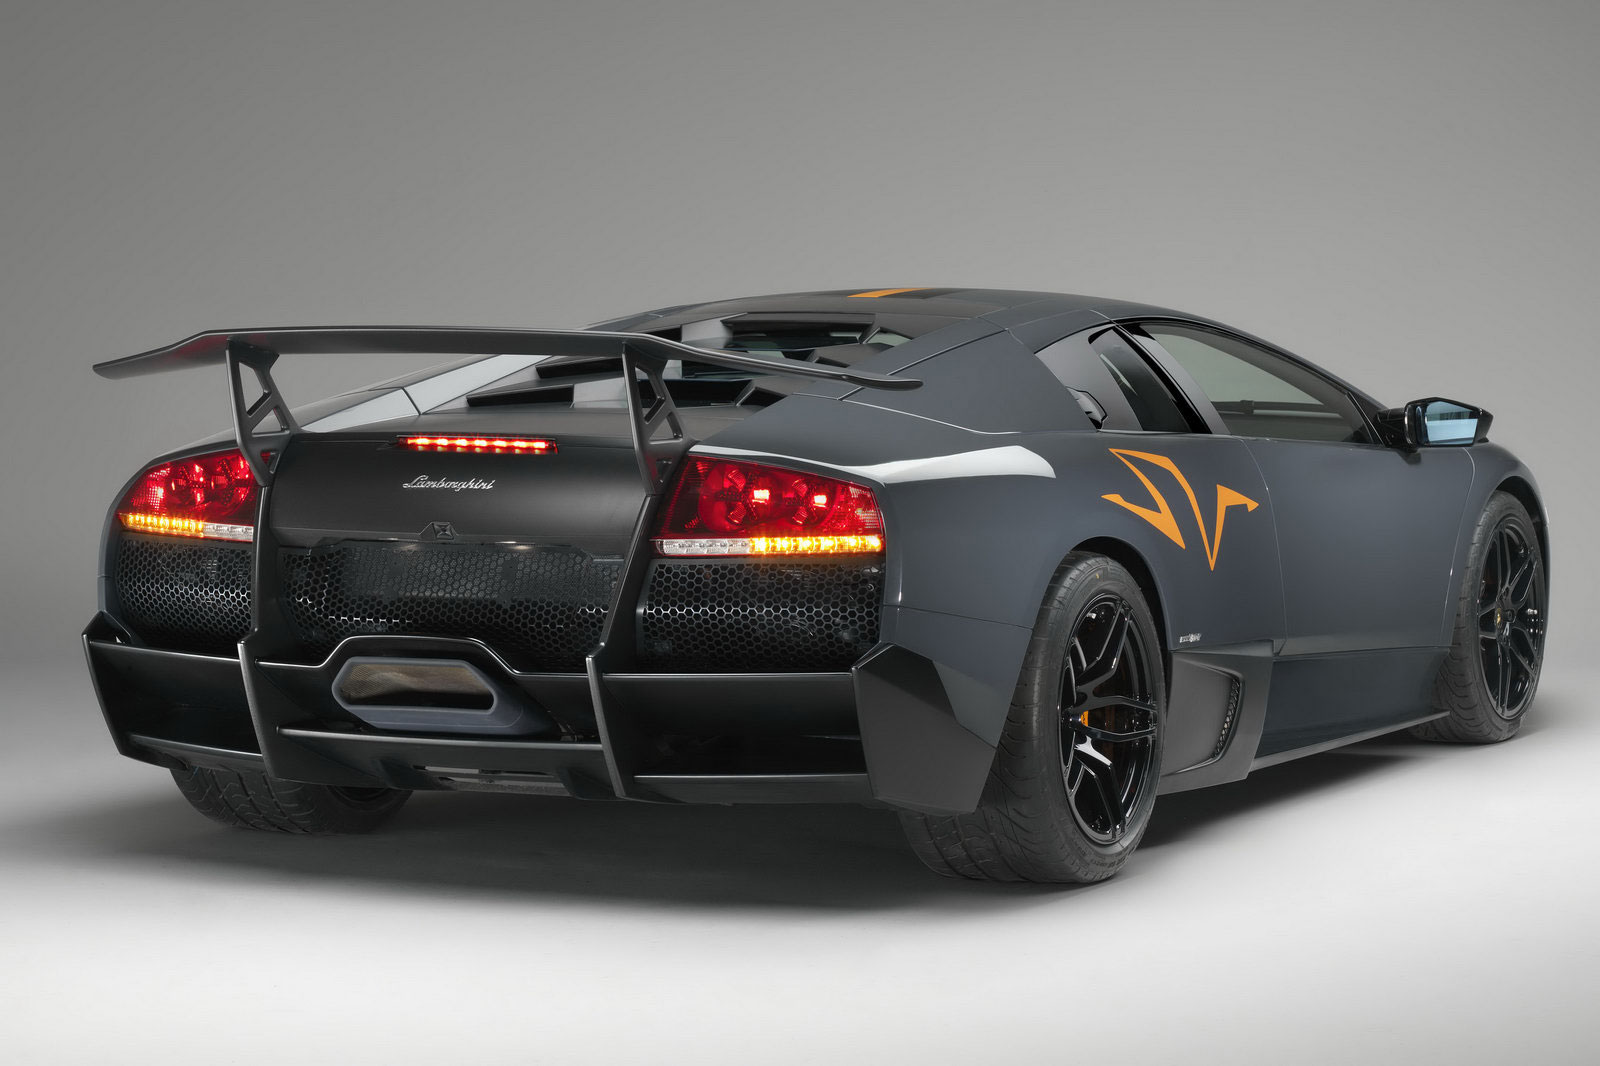 lamborghini murcielago lp 670 4 sv china edition designed and manufactured exclusively for the. Black Bedroom Furniture Sets. Home Design Ideas